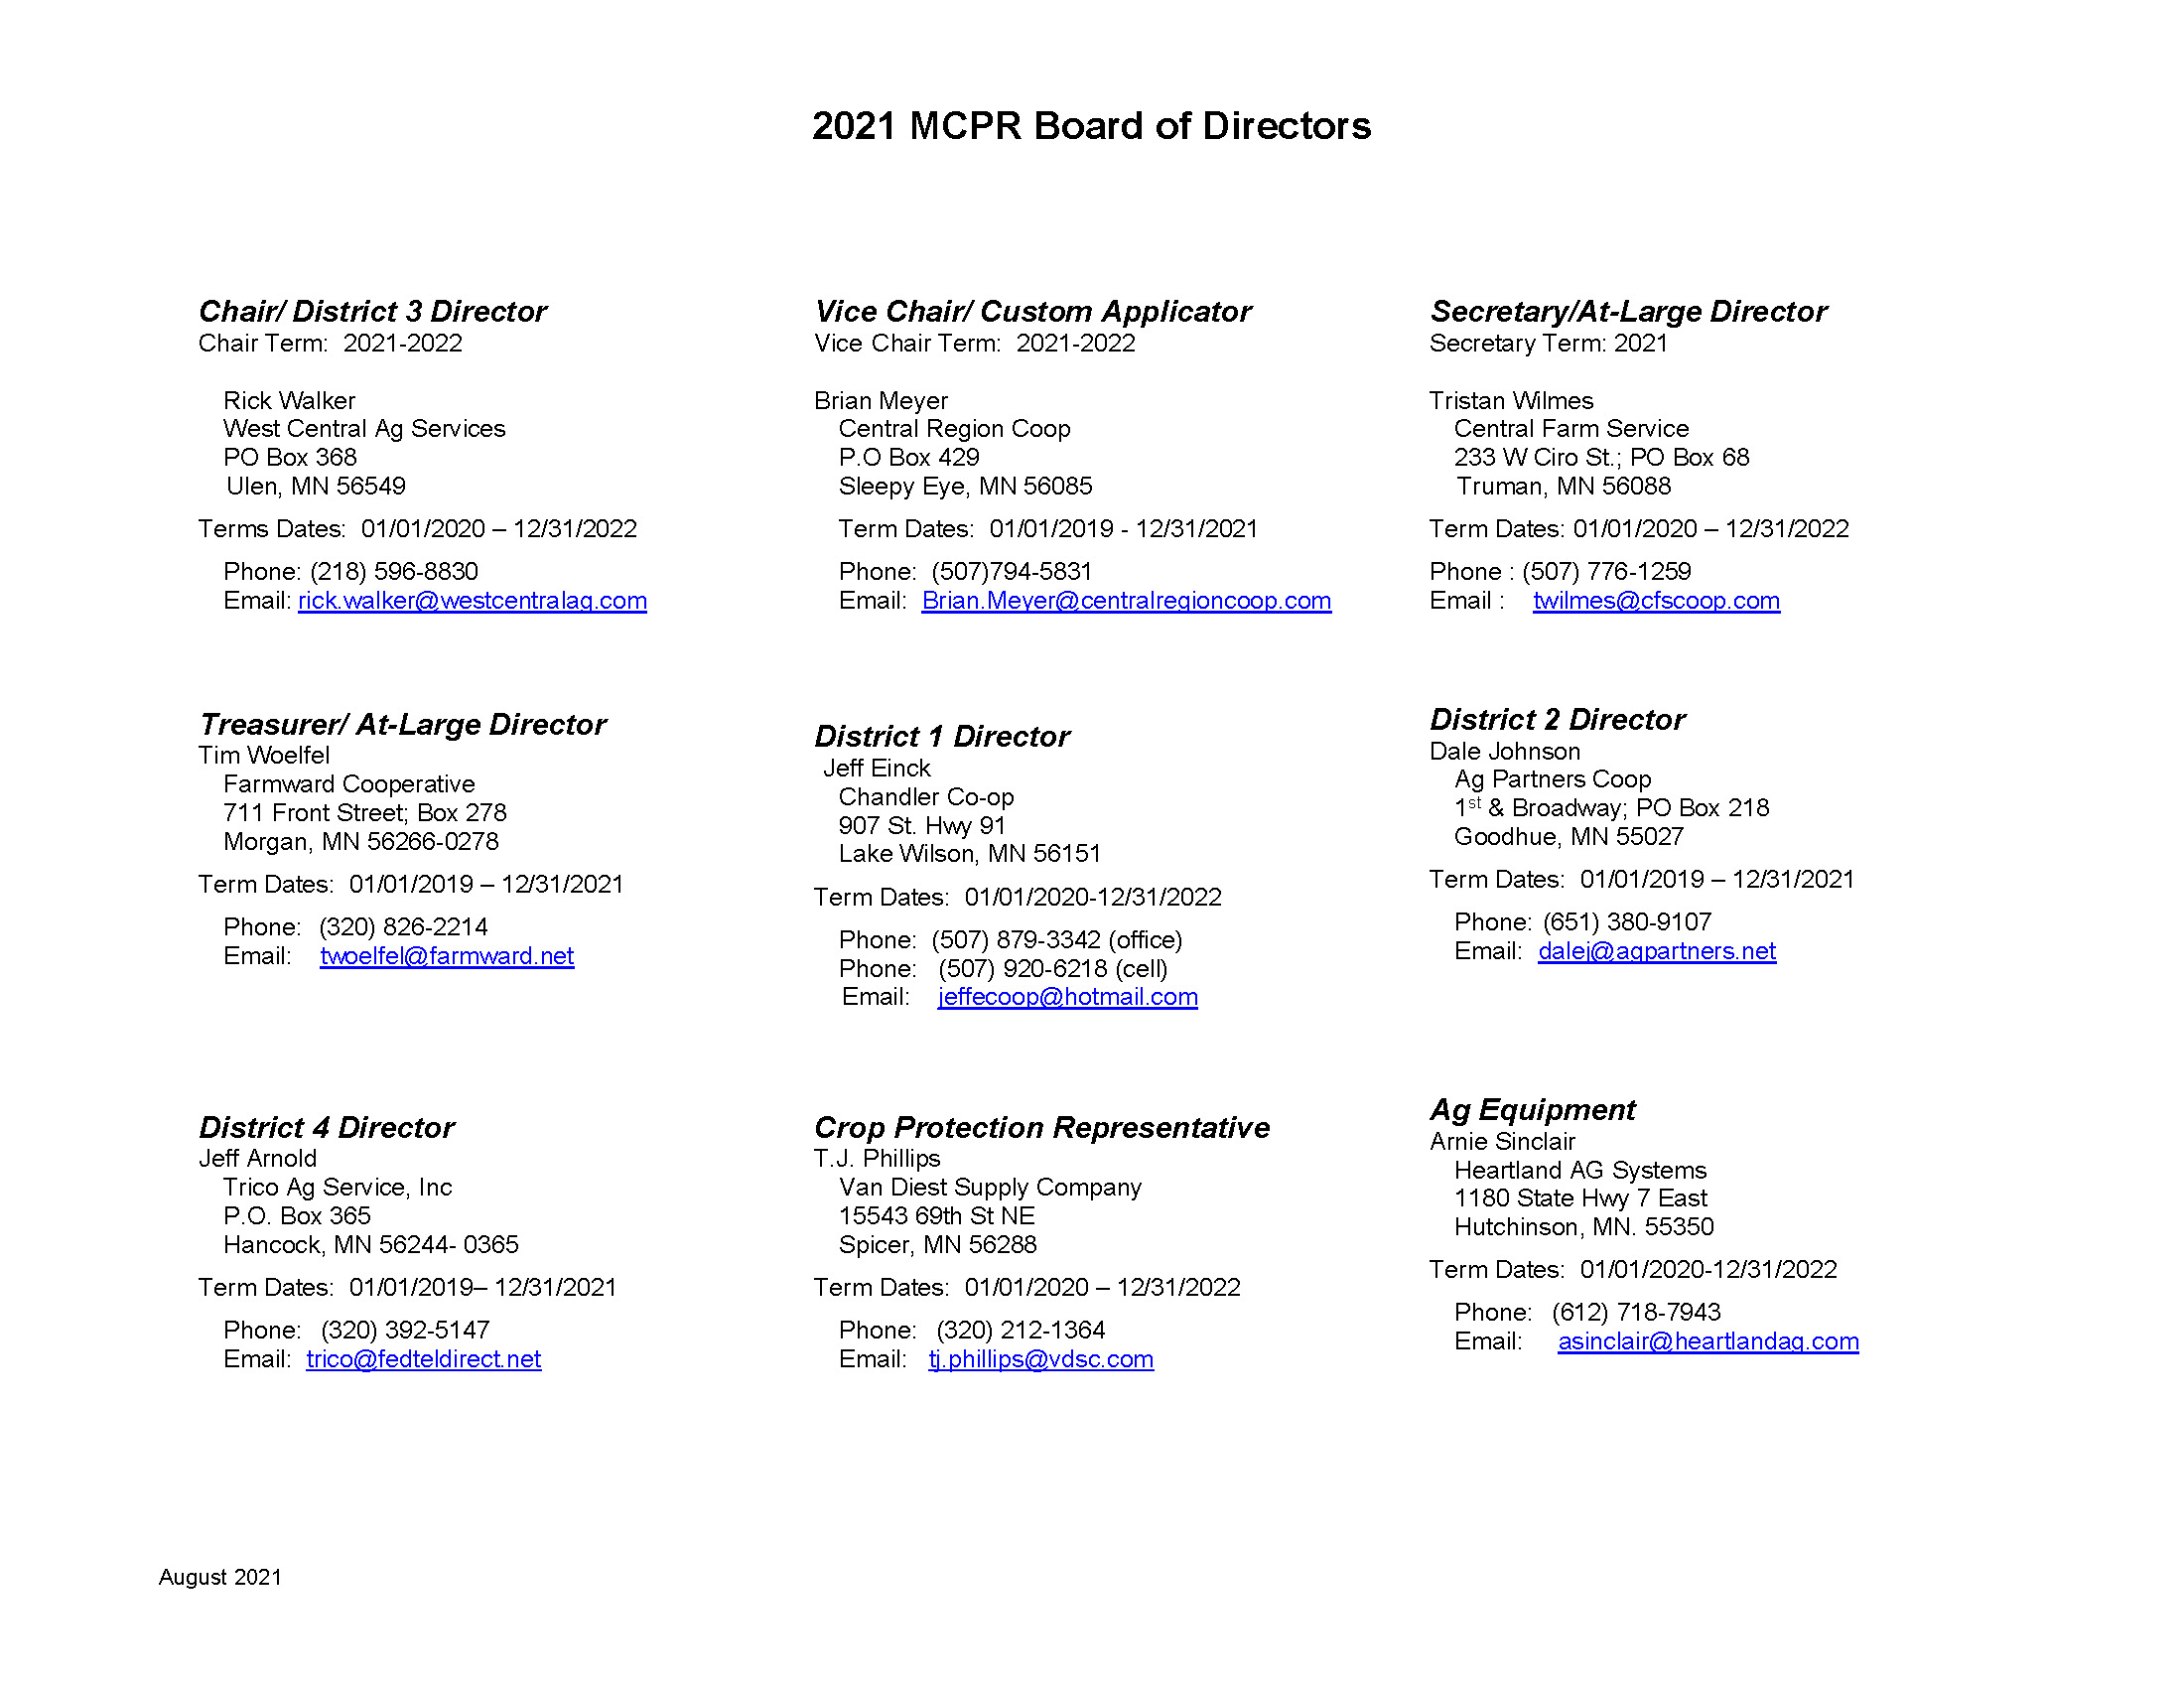 2021 MCPR Board of Directors_August_Page_1